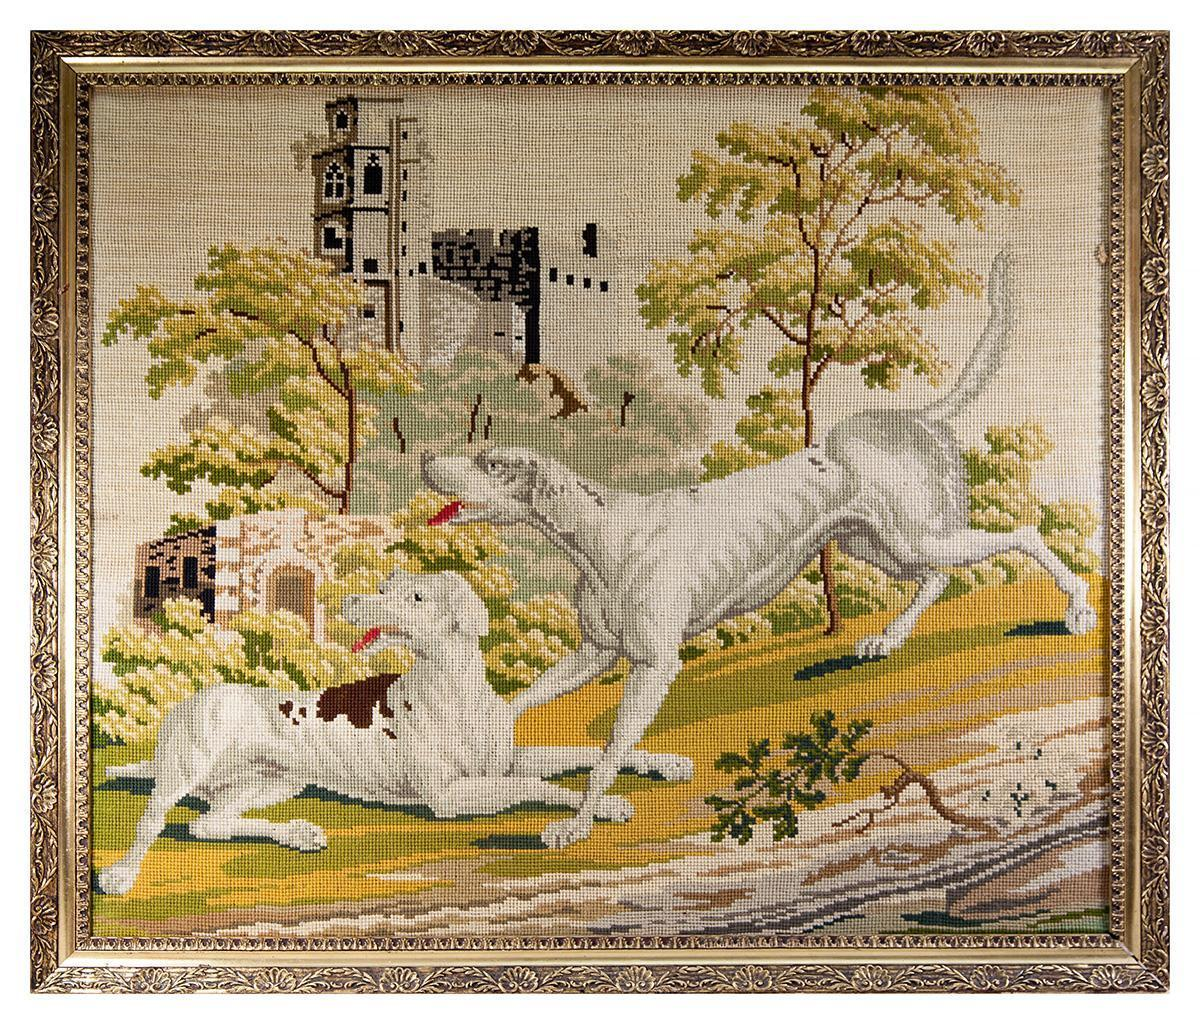 "RARE Huge Antique Victorian Needlepoint Tapestry Sampler of 2 Hounds & a Castle, 30"" x 26"" in Frame"